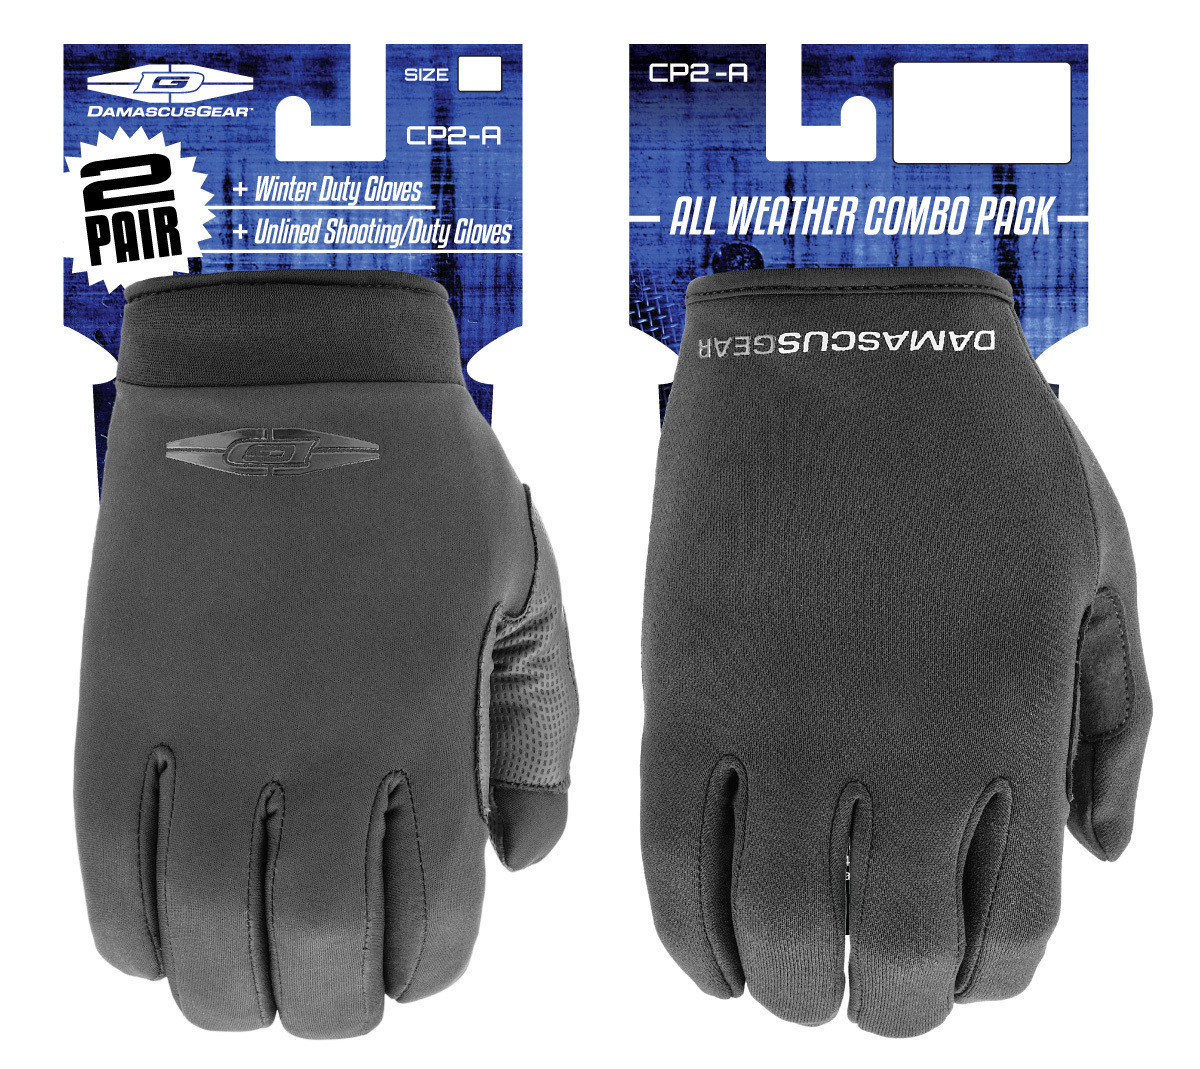 CP1-T - All Weather Combo Pack